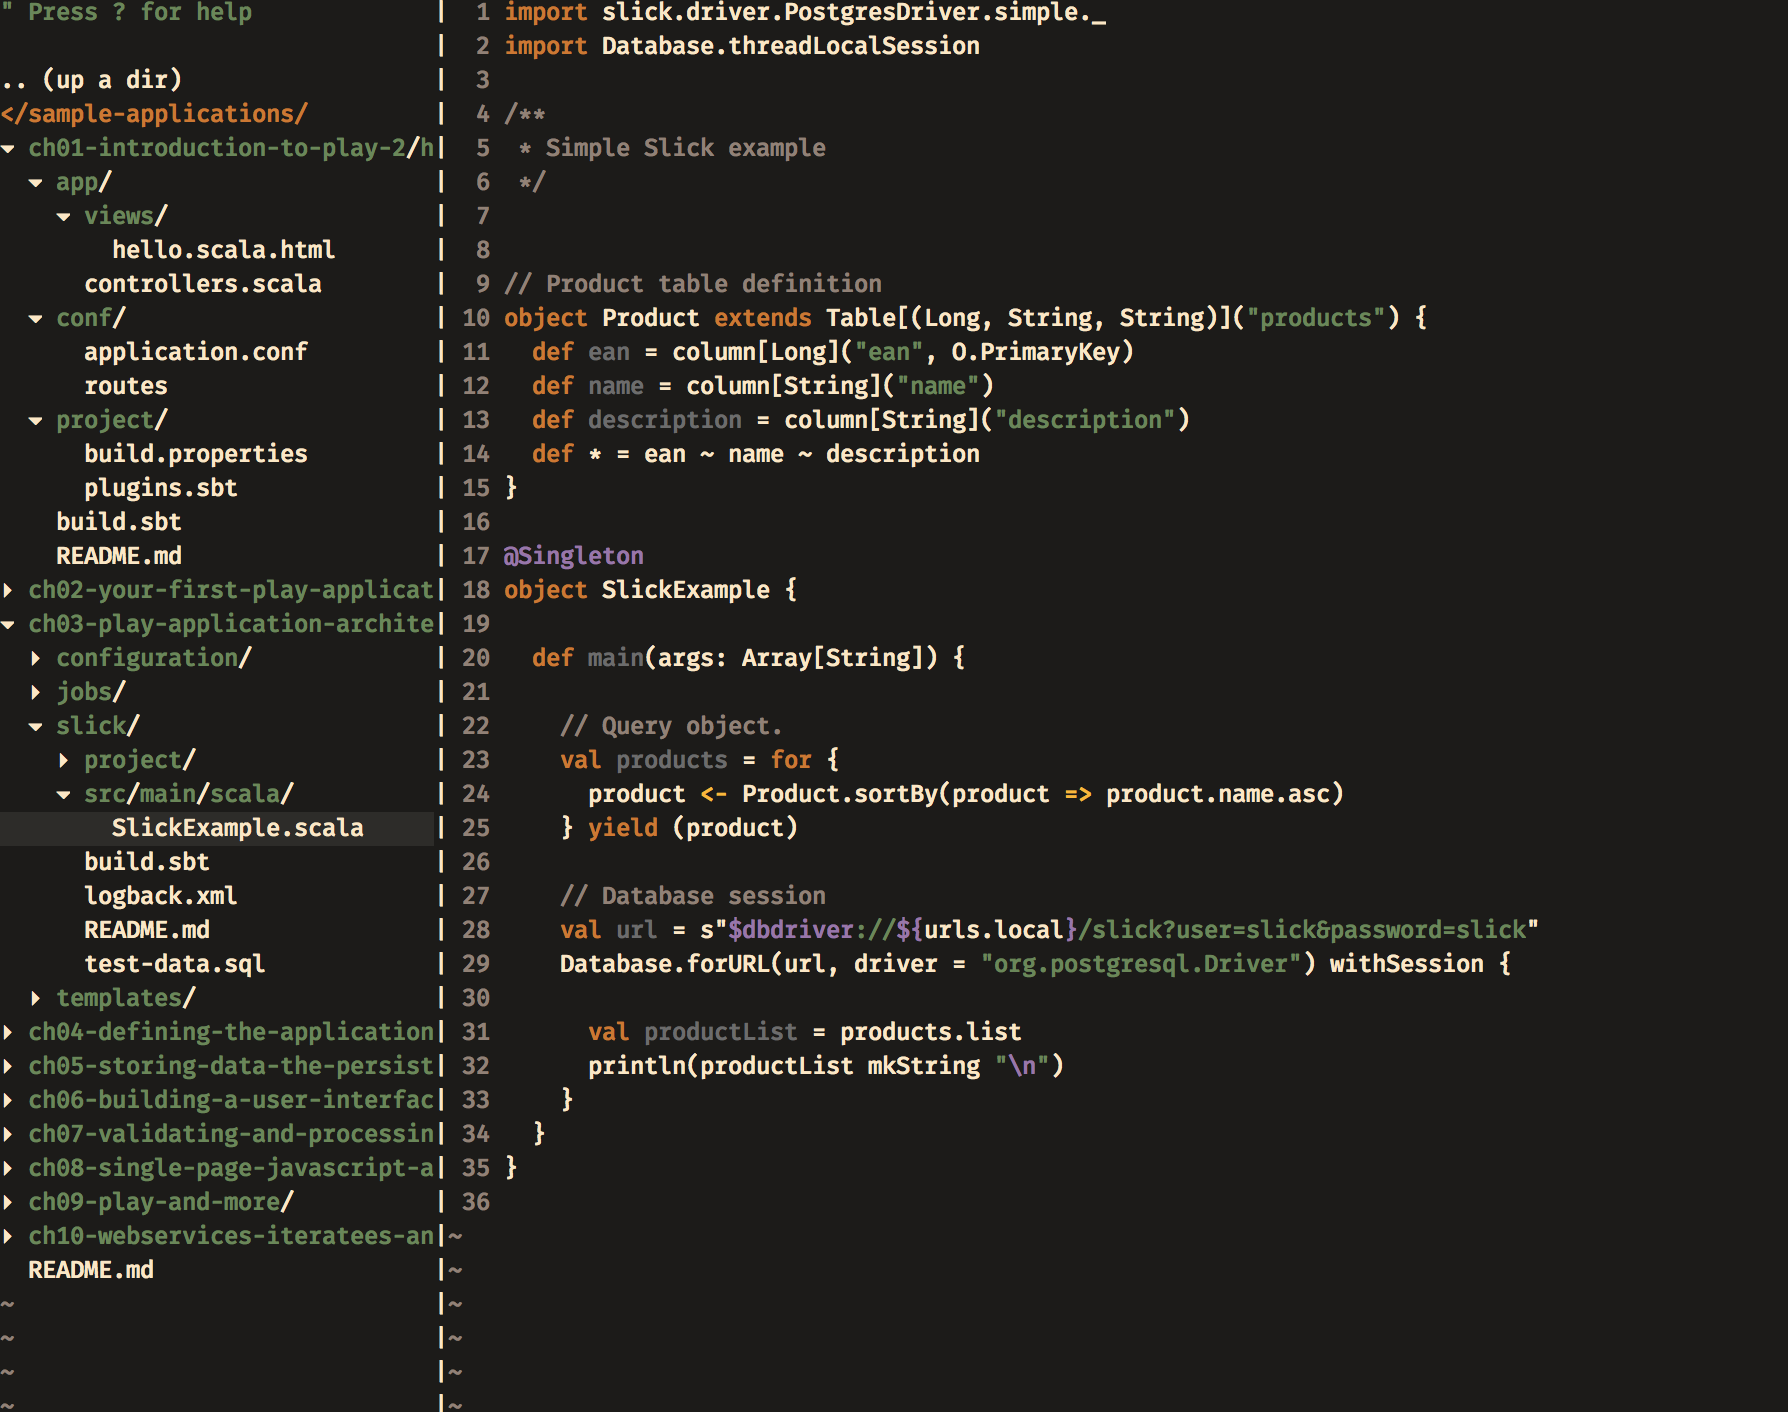 vim-colors/README md at master · sherifkandeel/vim-colors · GitHub